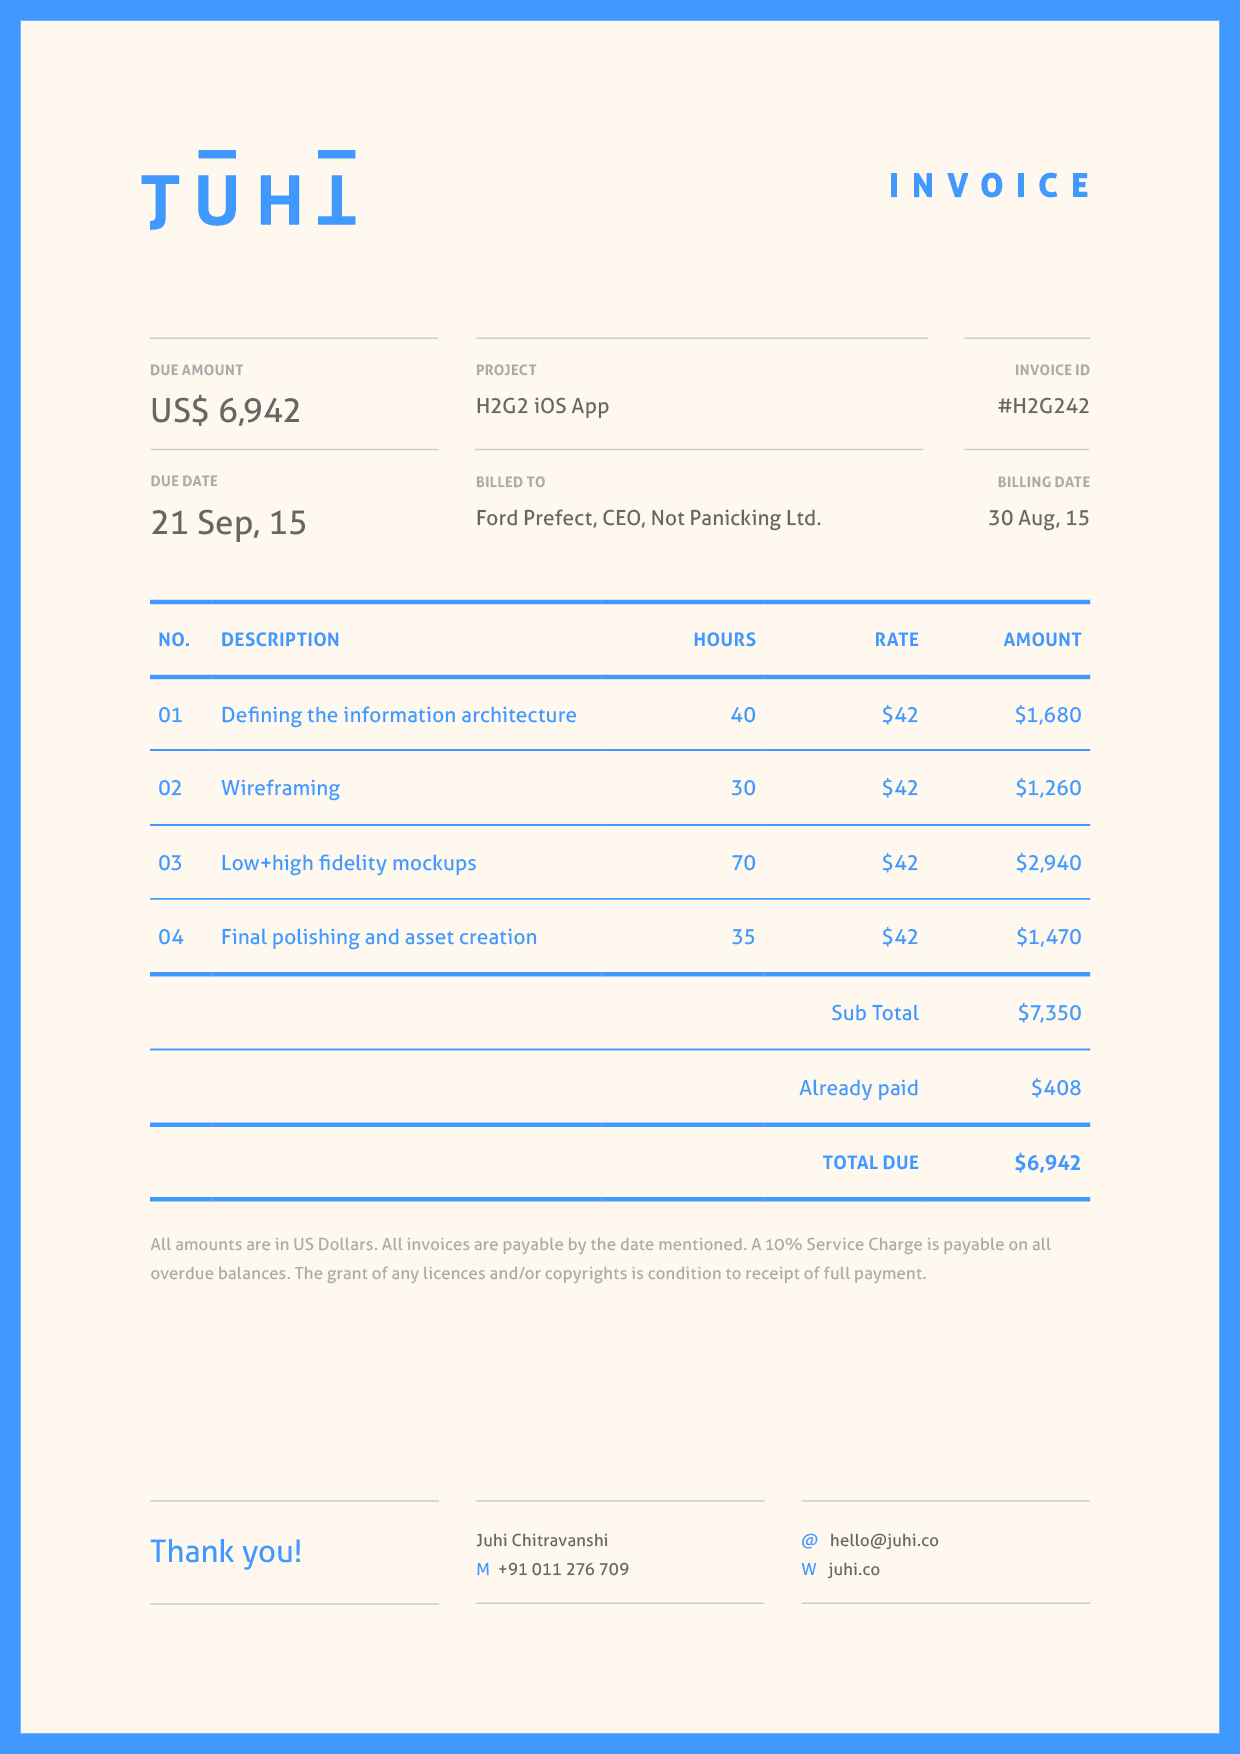 Shopdesignsus  Surprising Dont Hold Back On Your Invoice  Inspiring Designs  With Great Invoice By Juhi Chitravanshi Follow With Comely Printing Receipts Also Buy Receipts In Addition In Kind Donation Receipt Template And Blank Cab Receipt As Well As Concur Receipt Store Additionally Receipt Reader App From Inspirationfeedcom With Shopdesignsus  Great Dont Hold Back On Your Invoice  Inspiring Designs  With Comely Invoice By Juhi Chitravanshi Follow And Surprising Printing Receipts Also Buy Receipts In Addition In Kind Donation Receipt Template From Inspirationfeedcom